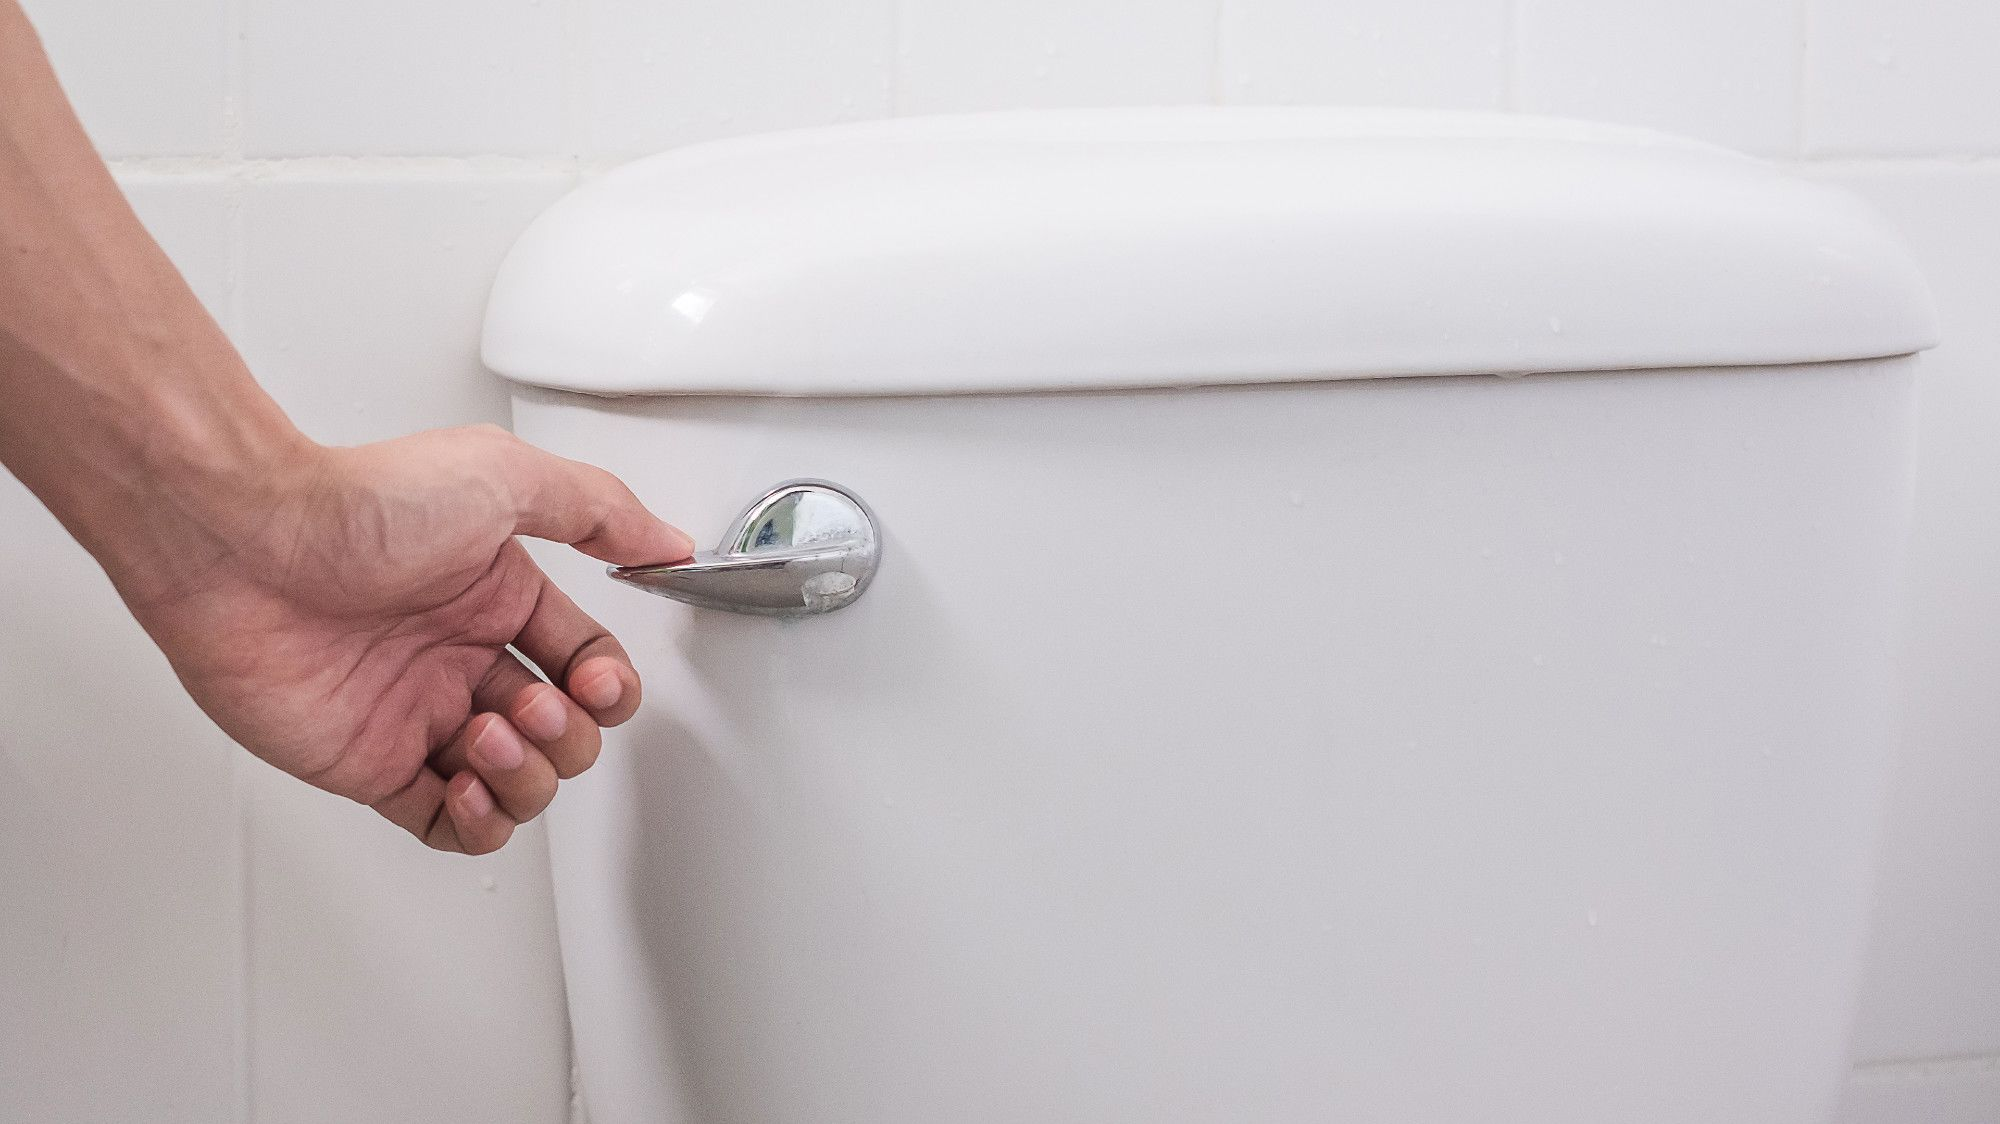 How to Stop a Running Toilet Without Calling a Plumber